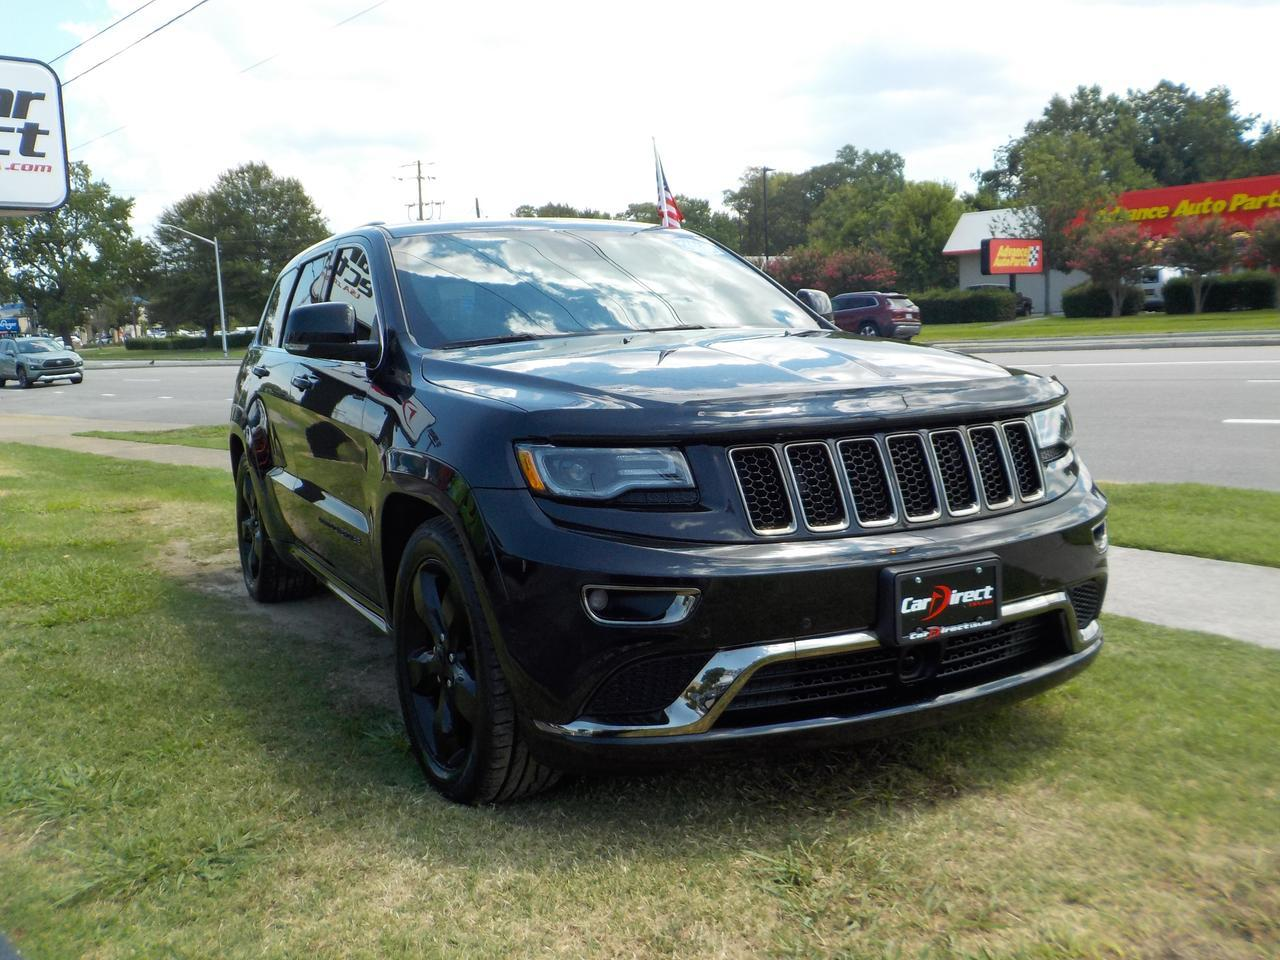 2016 JEEP GRAND CHEROKEE HIGH ALTITUDE 4X4, ECODIESEL, LEATHER, HEATED/COOLED SEATS, NAV, 1 OWNER, LOW MILES, CLEAN CARFAX! Virginia Beach VA